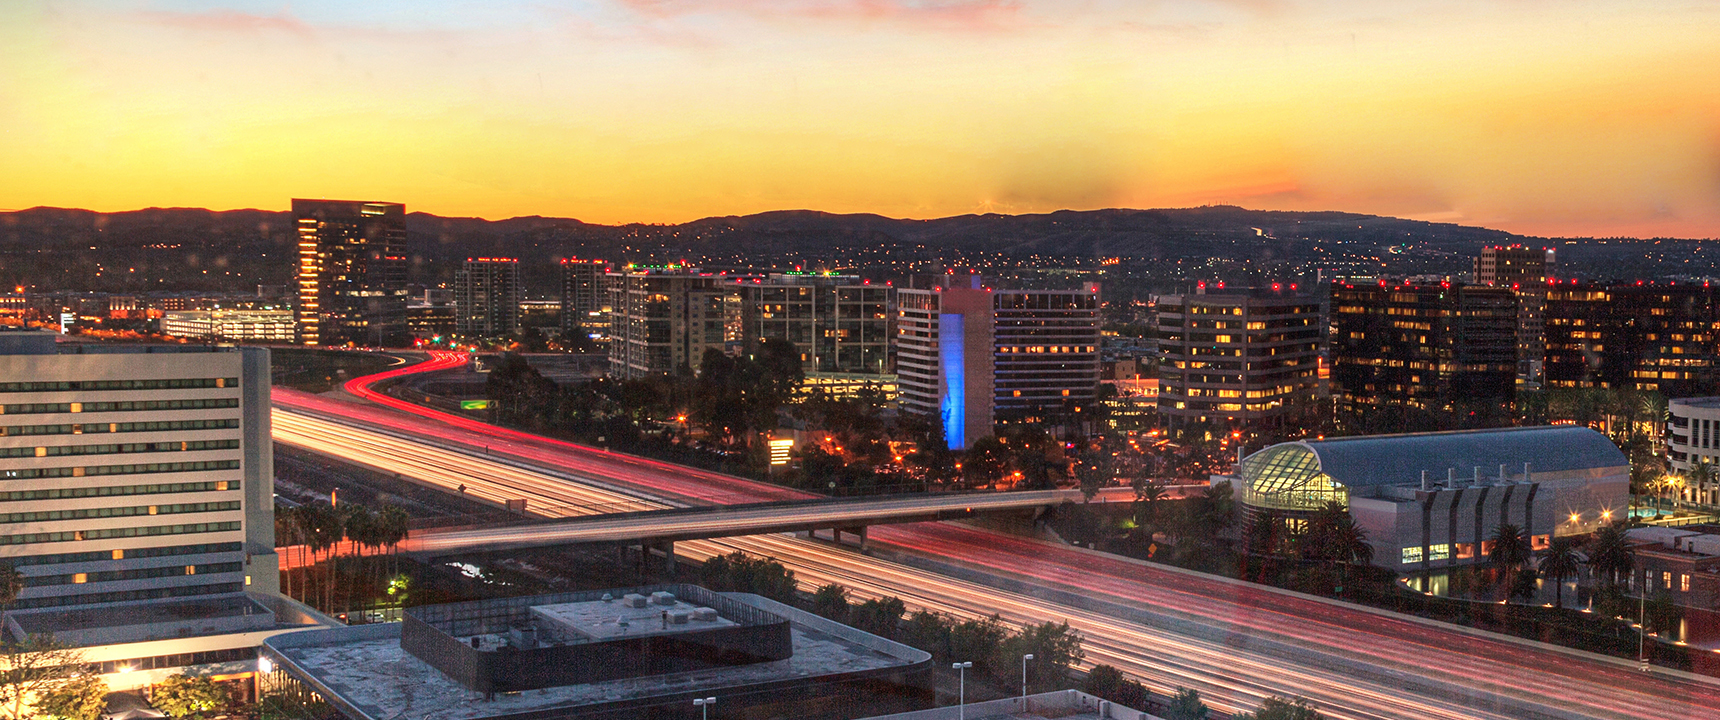 Photo of Irvine, California where the Southern California Business Center is located.